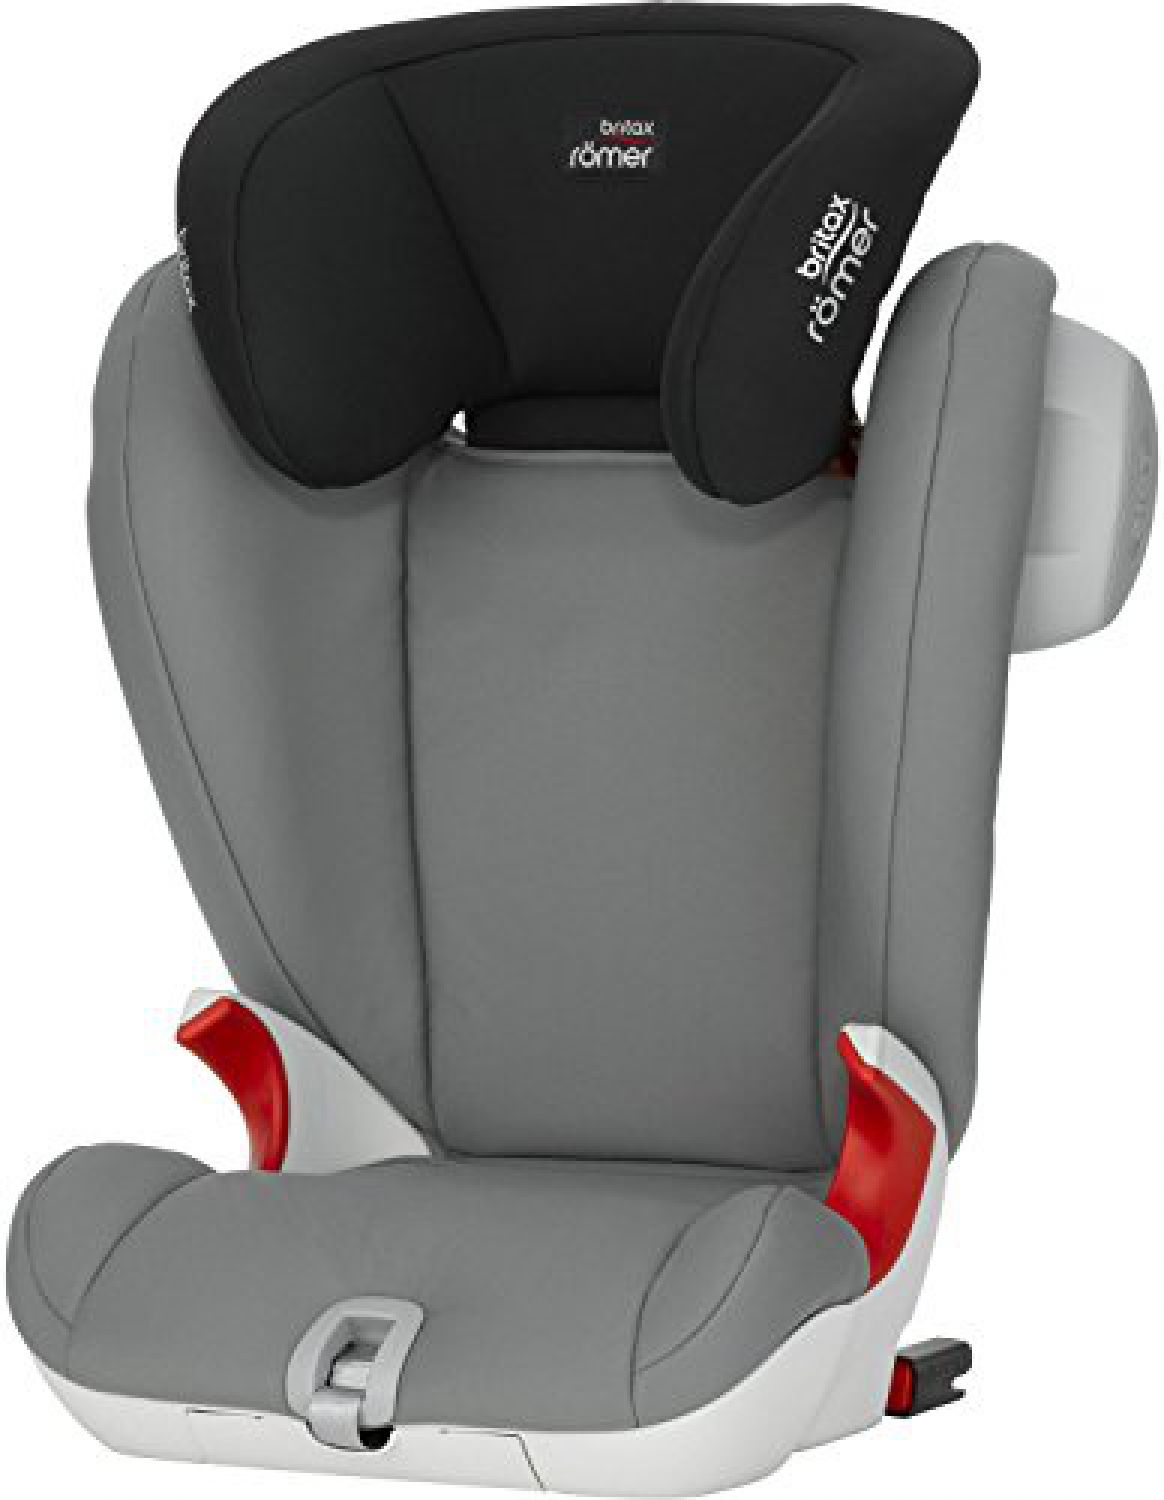 britax r mer autositz kidfix sl sict gruppe 2 3 15 36 kg kollektion 2016 ebay. Black Bedroom Furniture Sets. Home Design Ideas